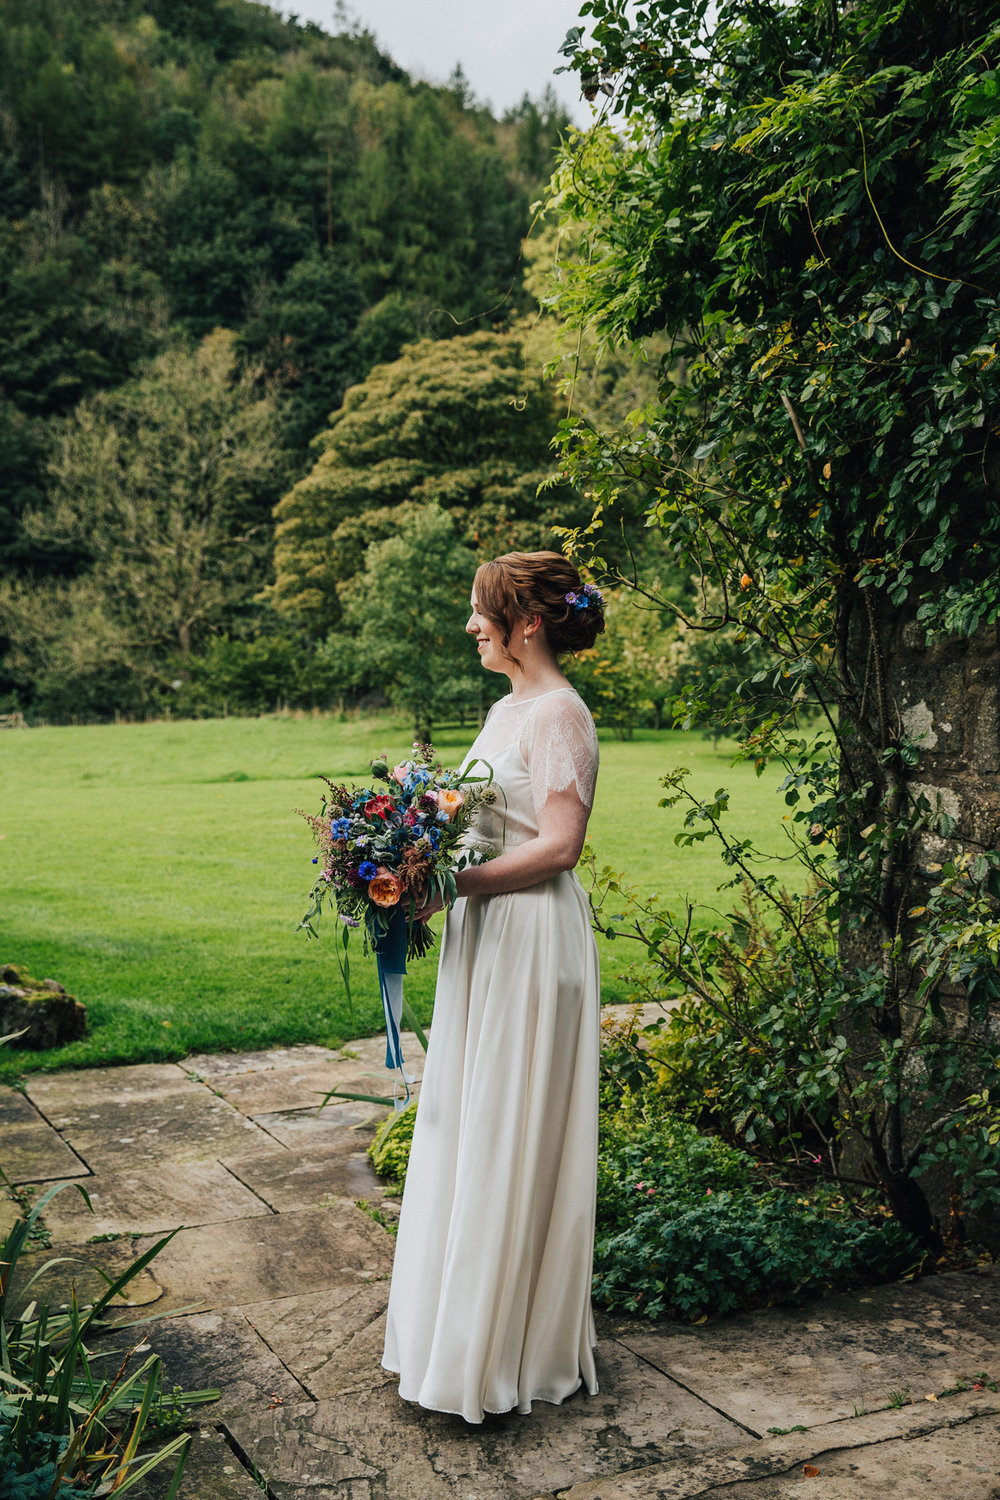 Kathryn-Kate-Beaumont-Clematis-Ivory-Silk-Lace-Wedding-Gown-Elegant-Country-House-Wedding-Emilie-May-Photography-10.jpg